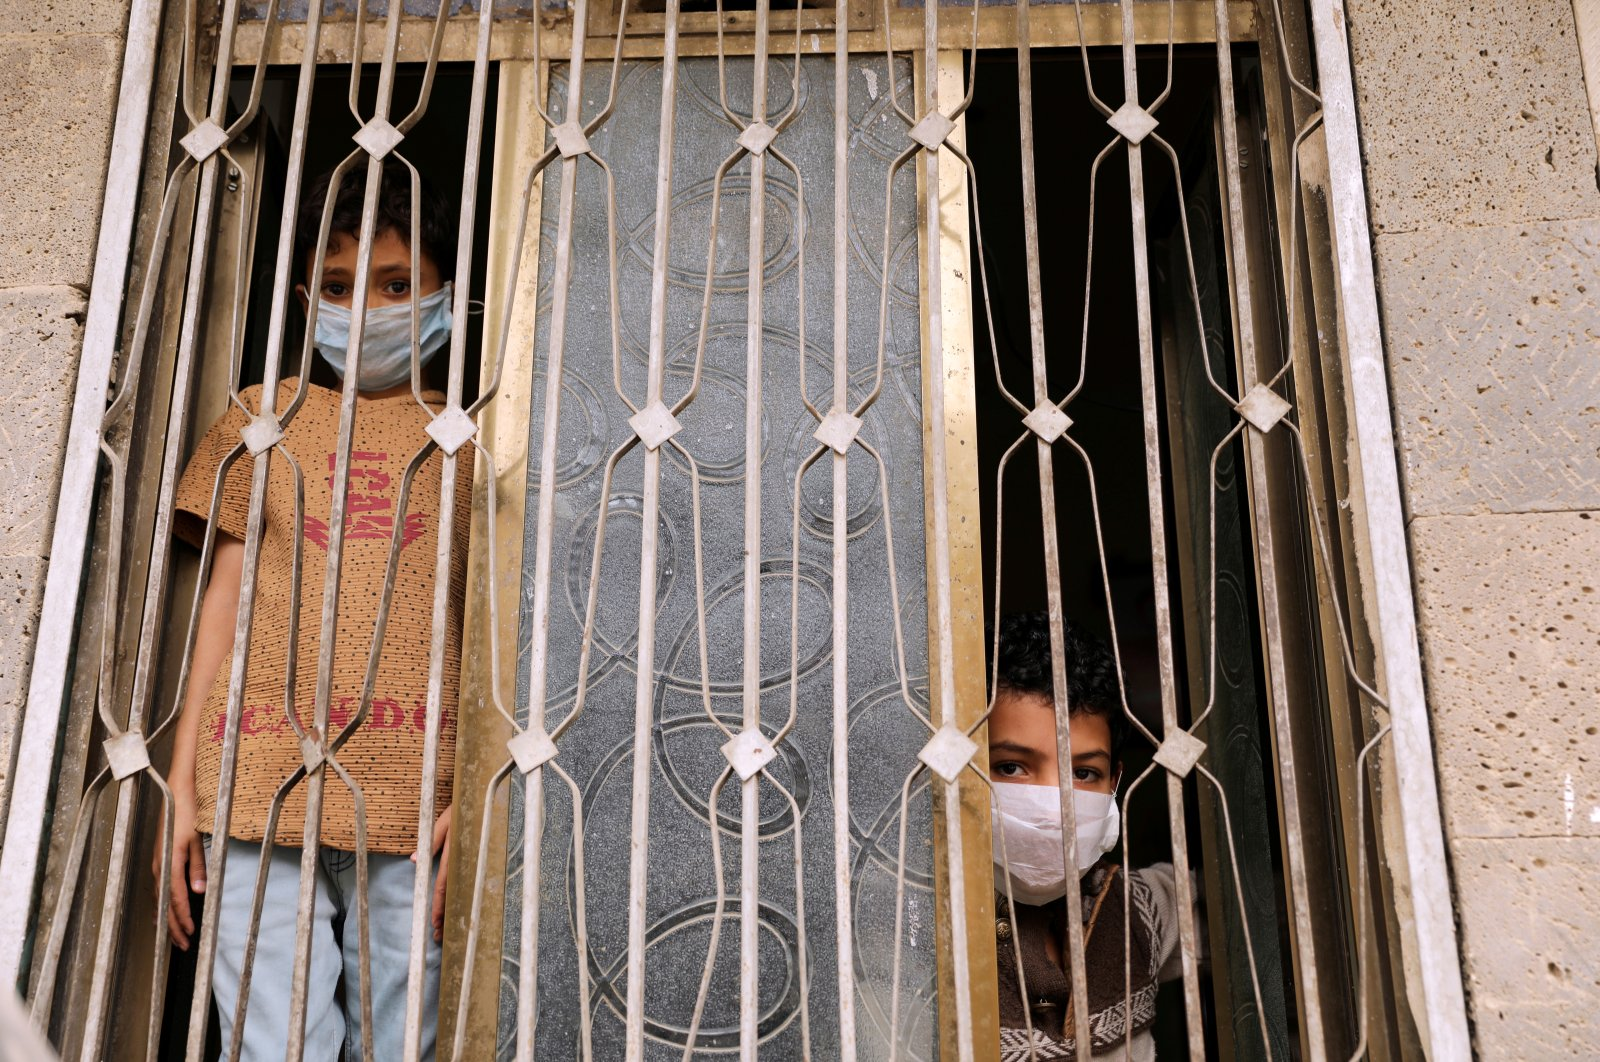 Children wearing protective masks look from behind a window, Sanaa, Yemen, May 6, 2020. (REUTERS Photo)